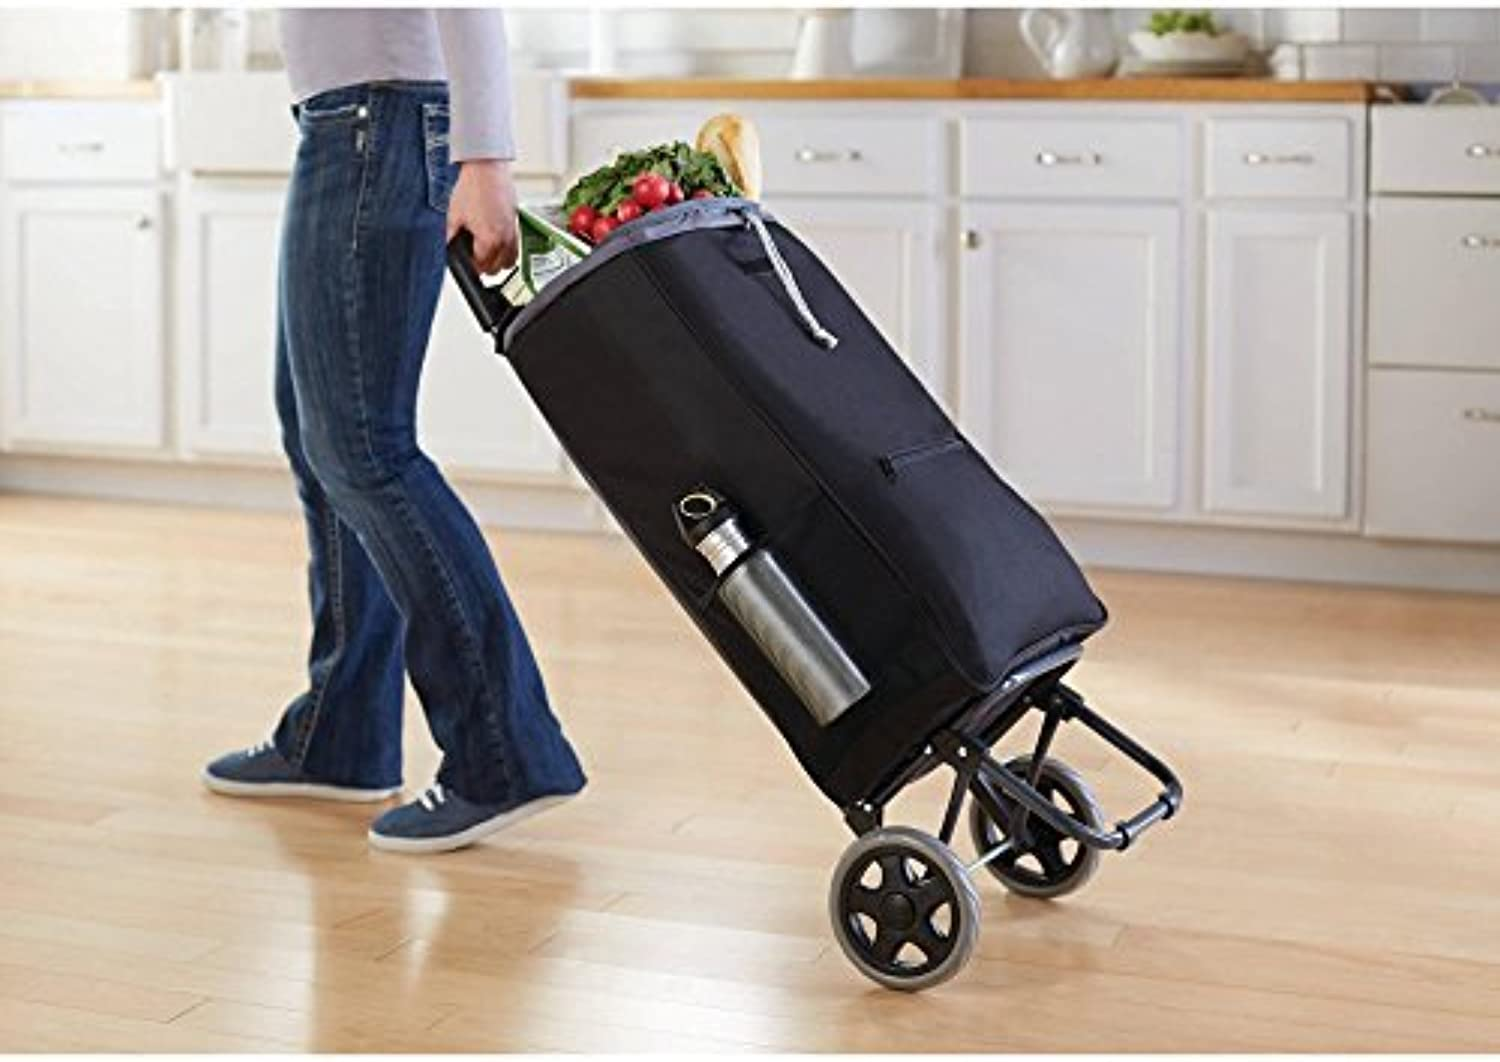 Mainstay Shopping Cart with Concealed zipper & side pocket for additional storage by Mainstay